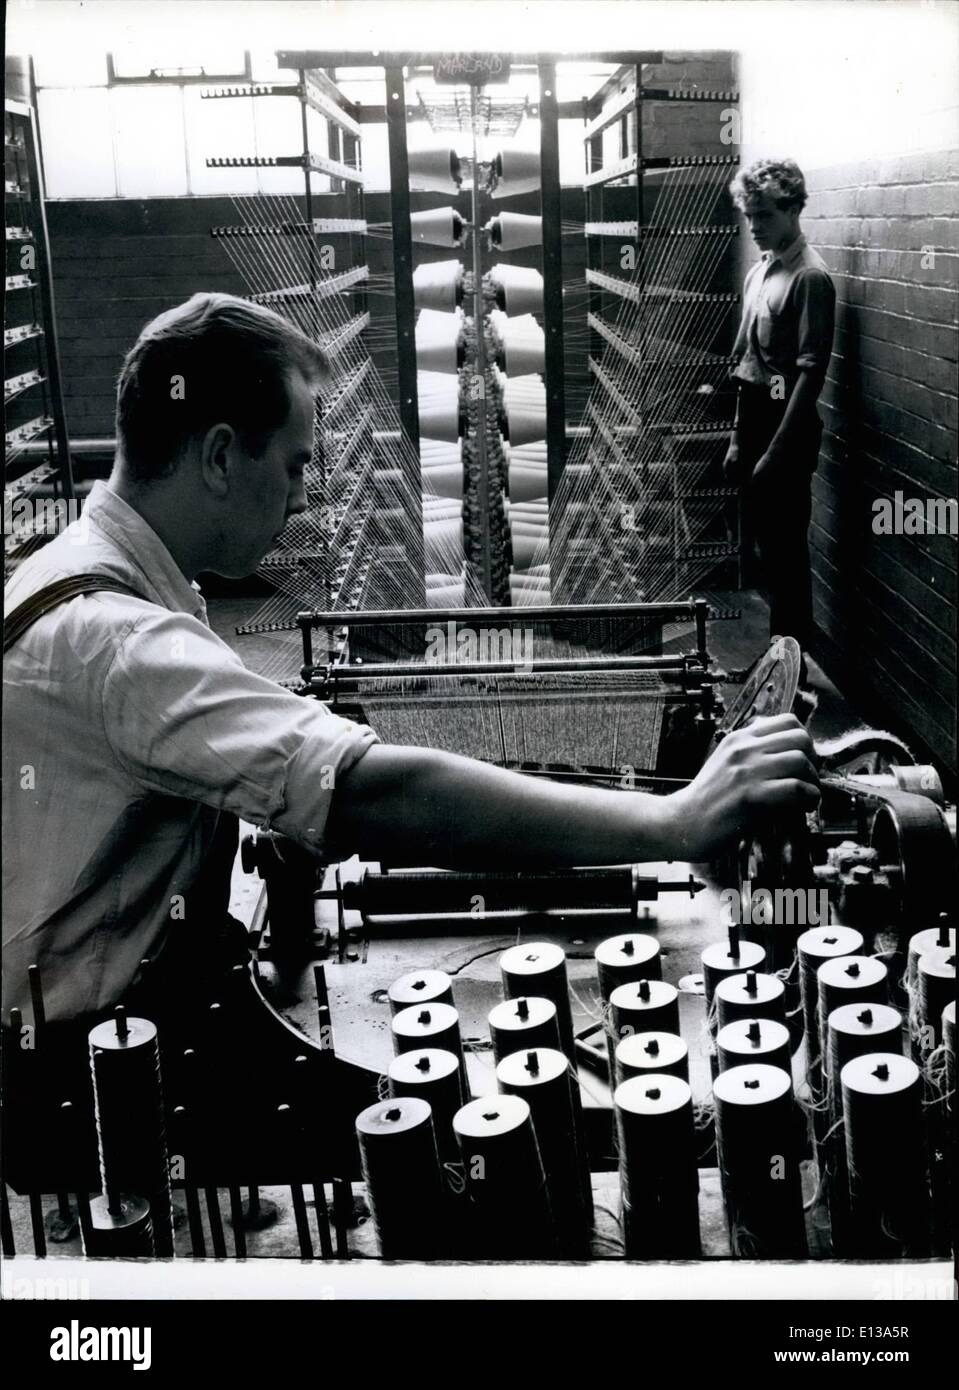 Feb. 29, 2012 - 11. For Bobbin Net; Winding Thread off the cones on to the bobbins which will be used later in making bobbin net. The bobbin are threaded on square Sedition Spindles. - Stock Image